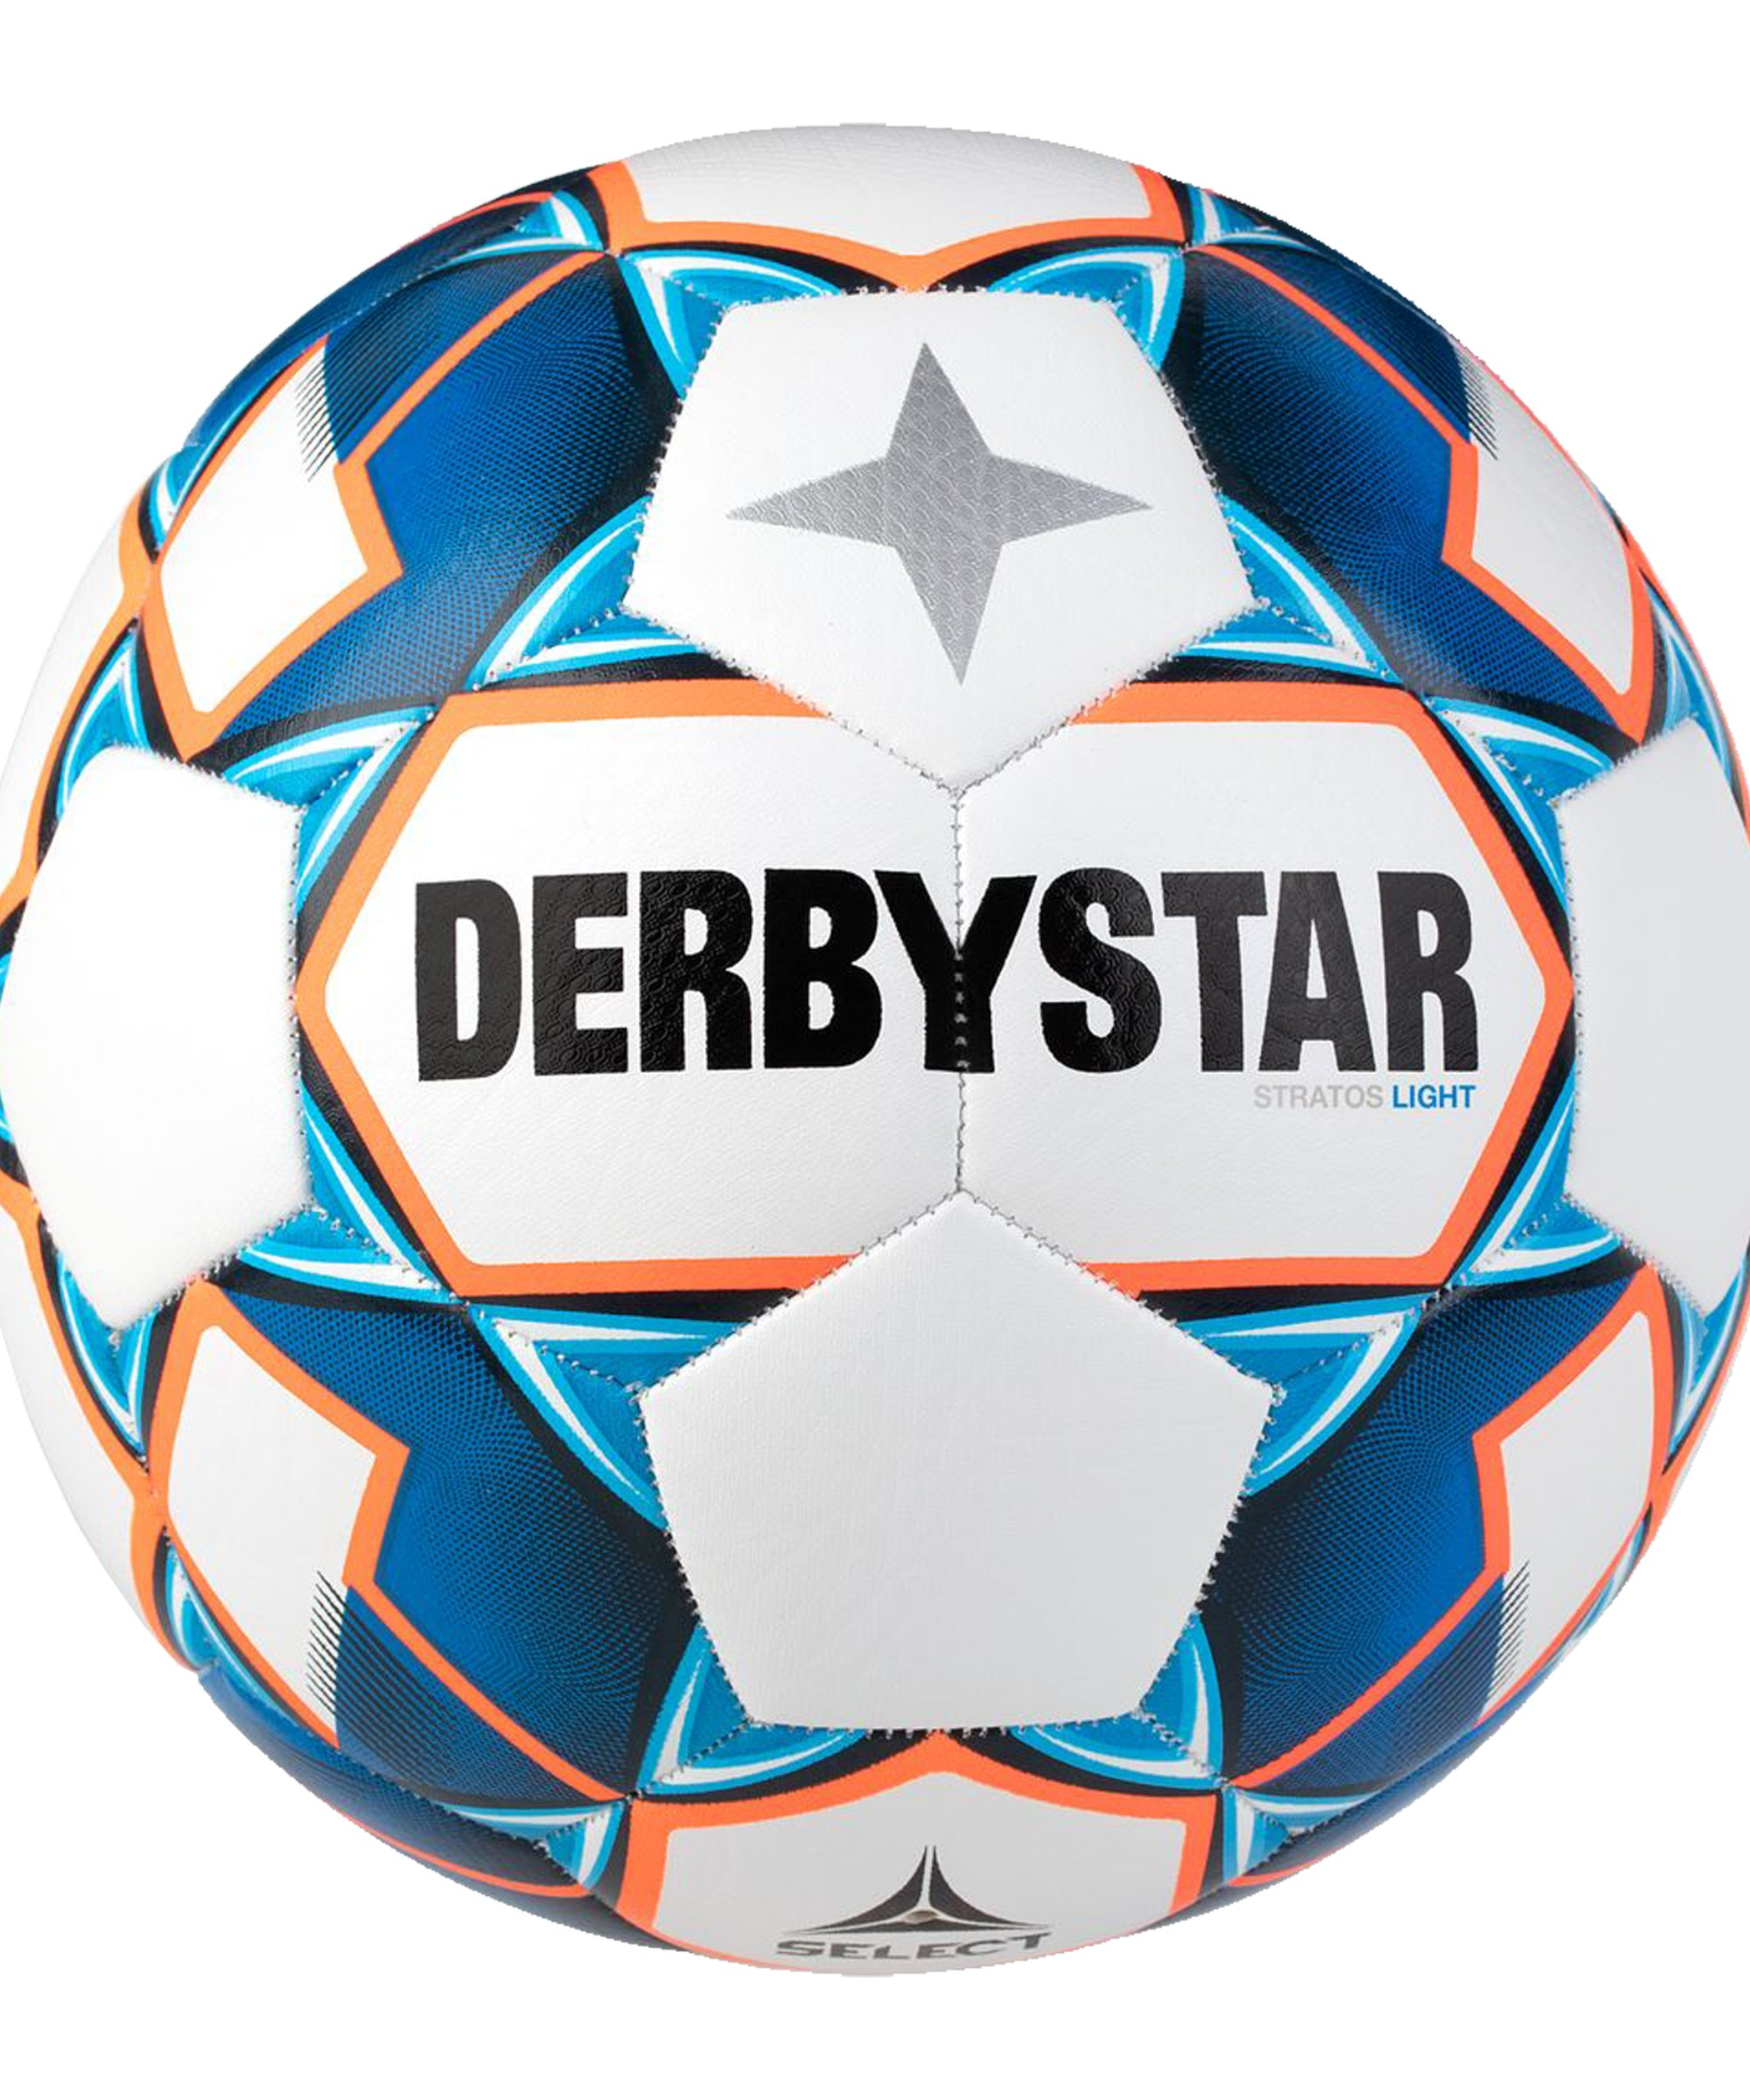 Derbystar Stratos Light v20 Trainingsball F167 - weiss